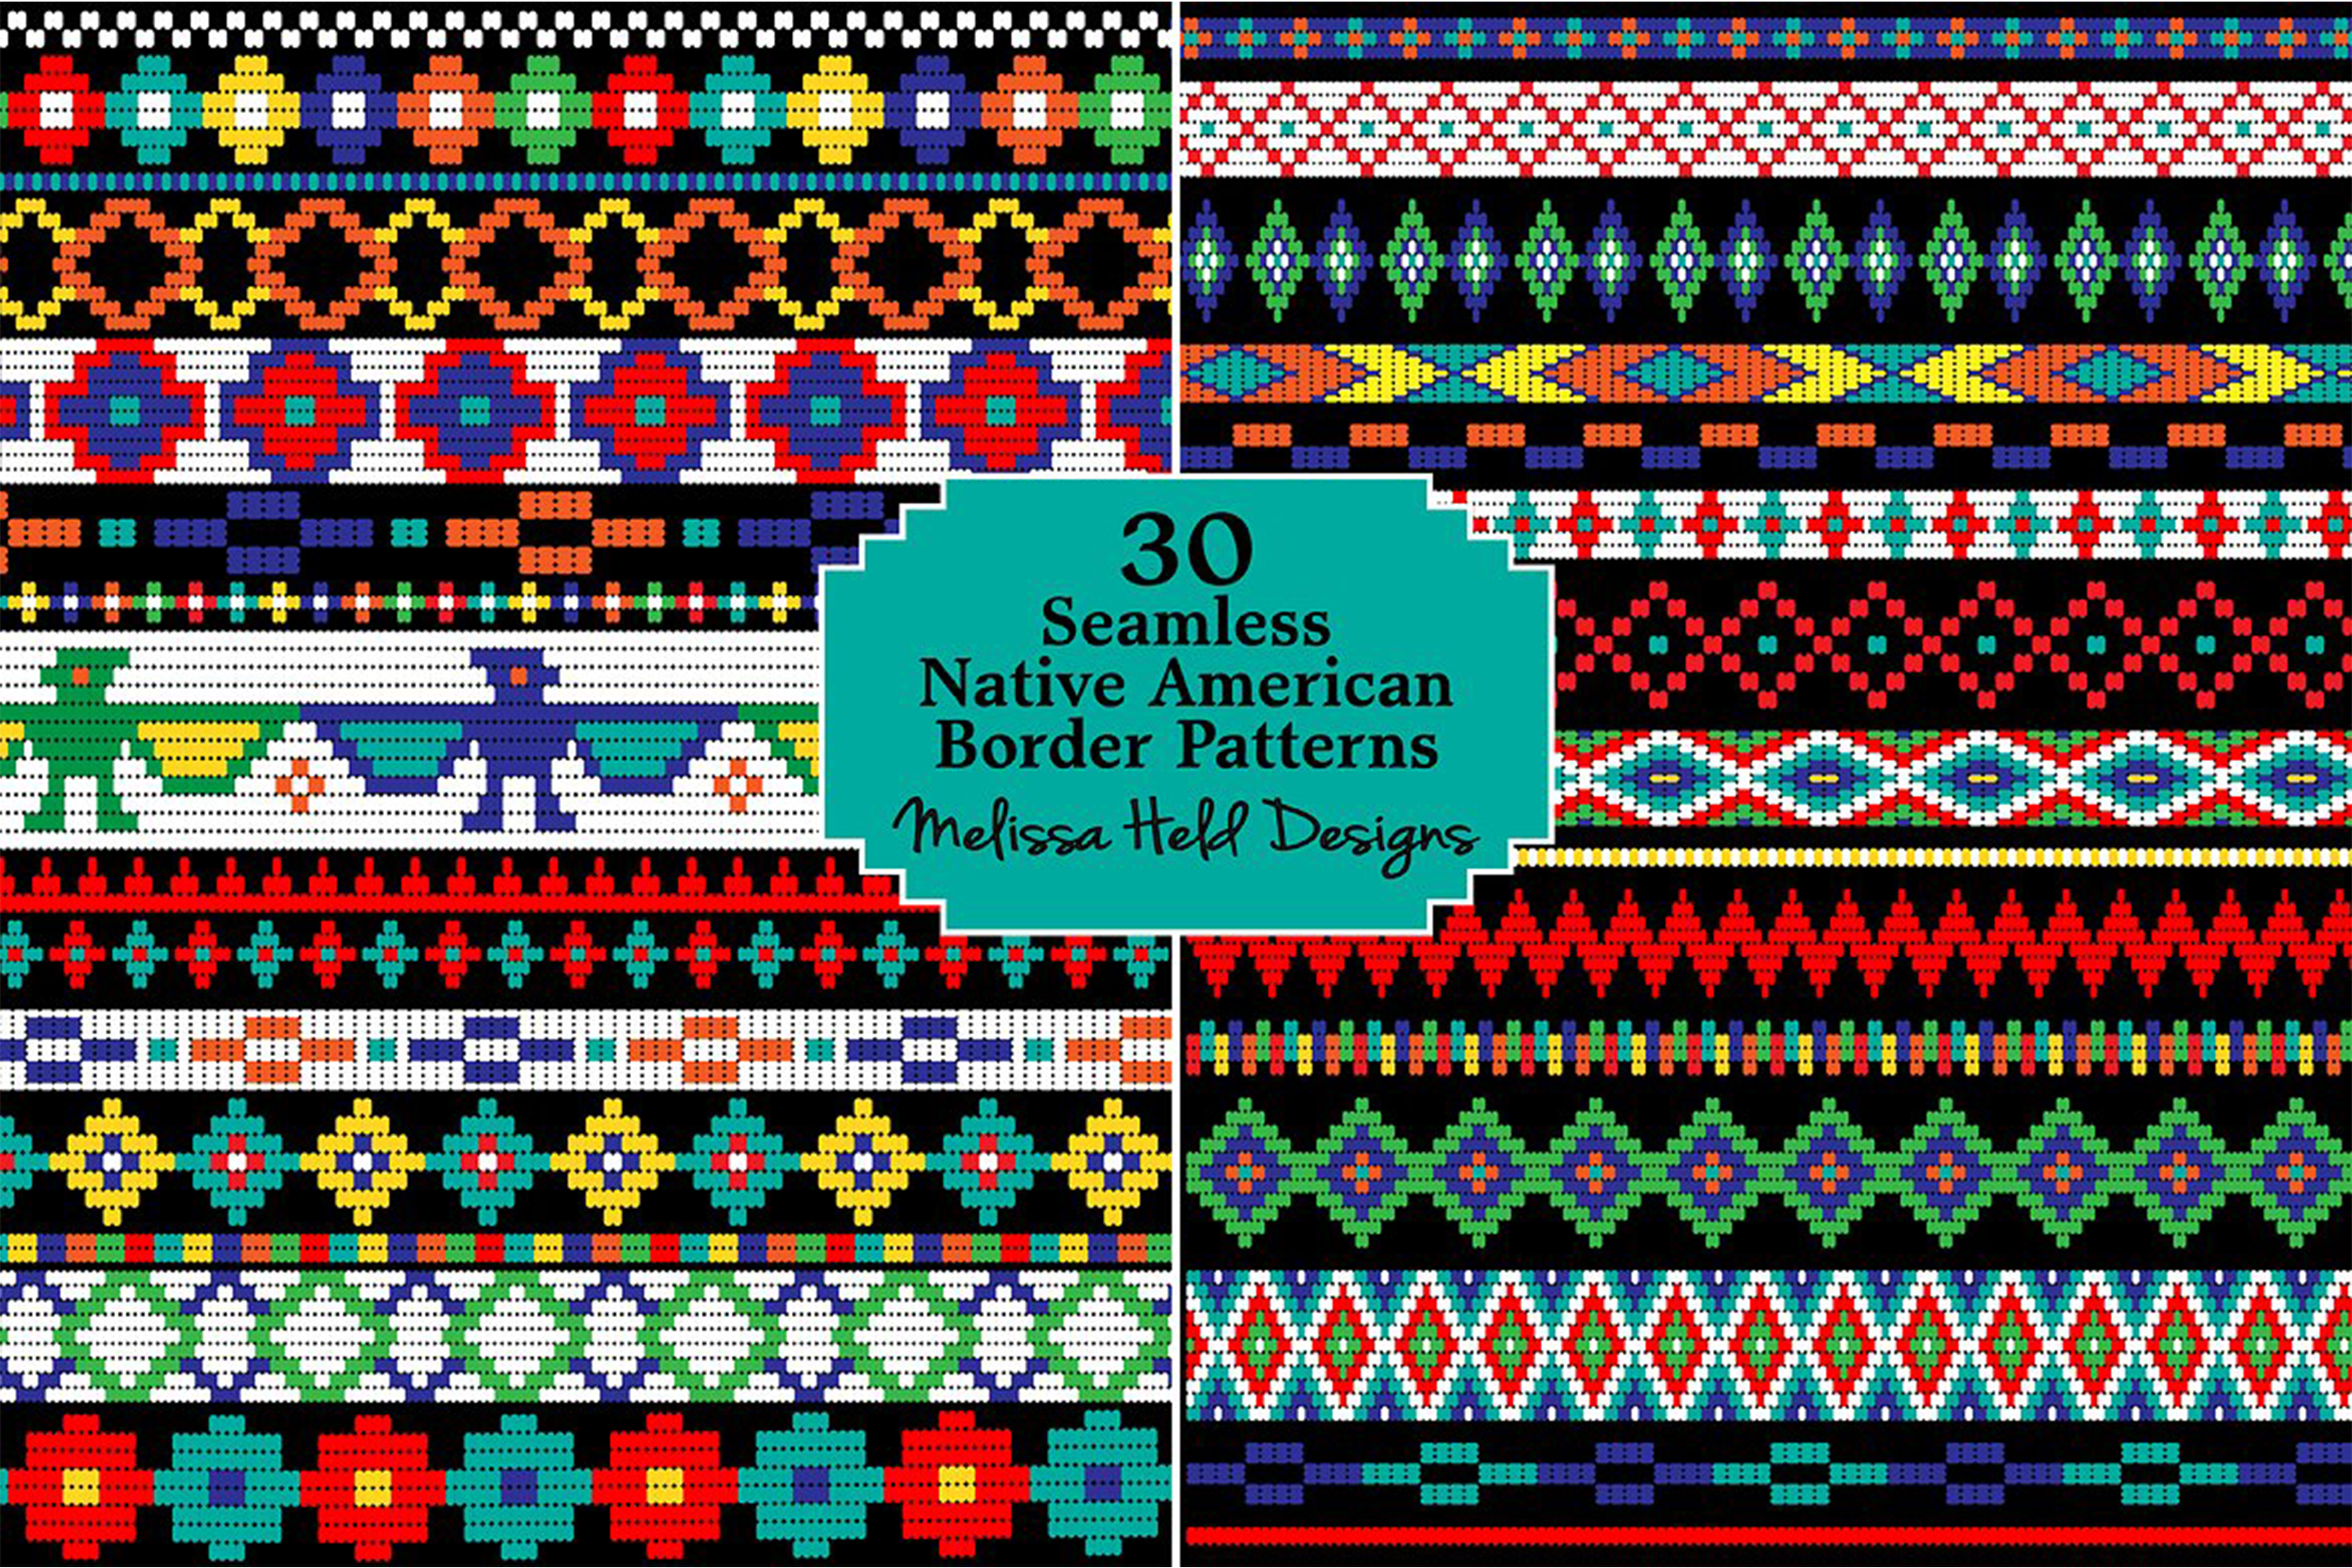 Native American Beaded Border Patterns example image 1